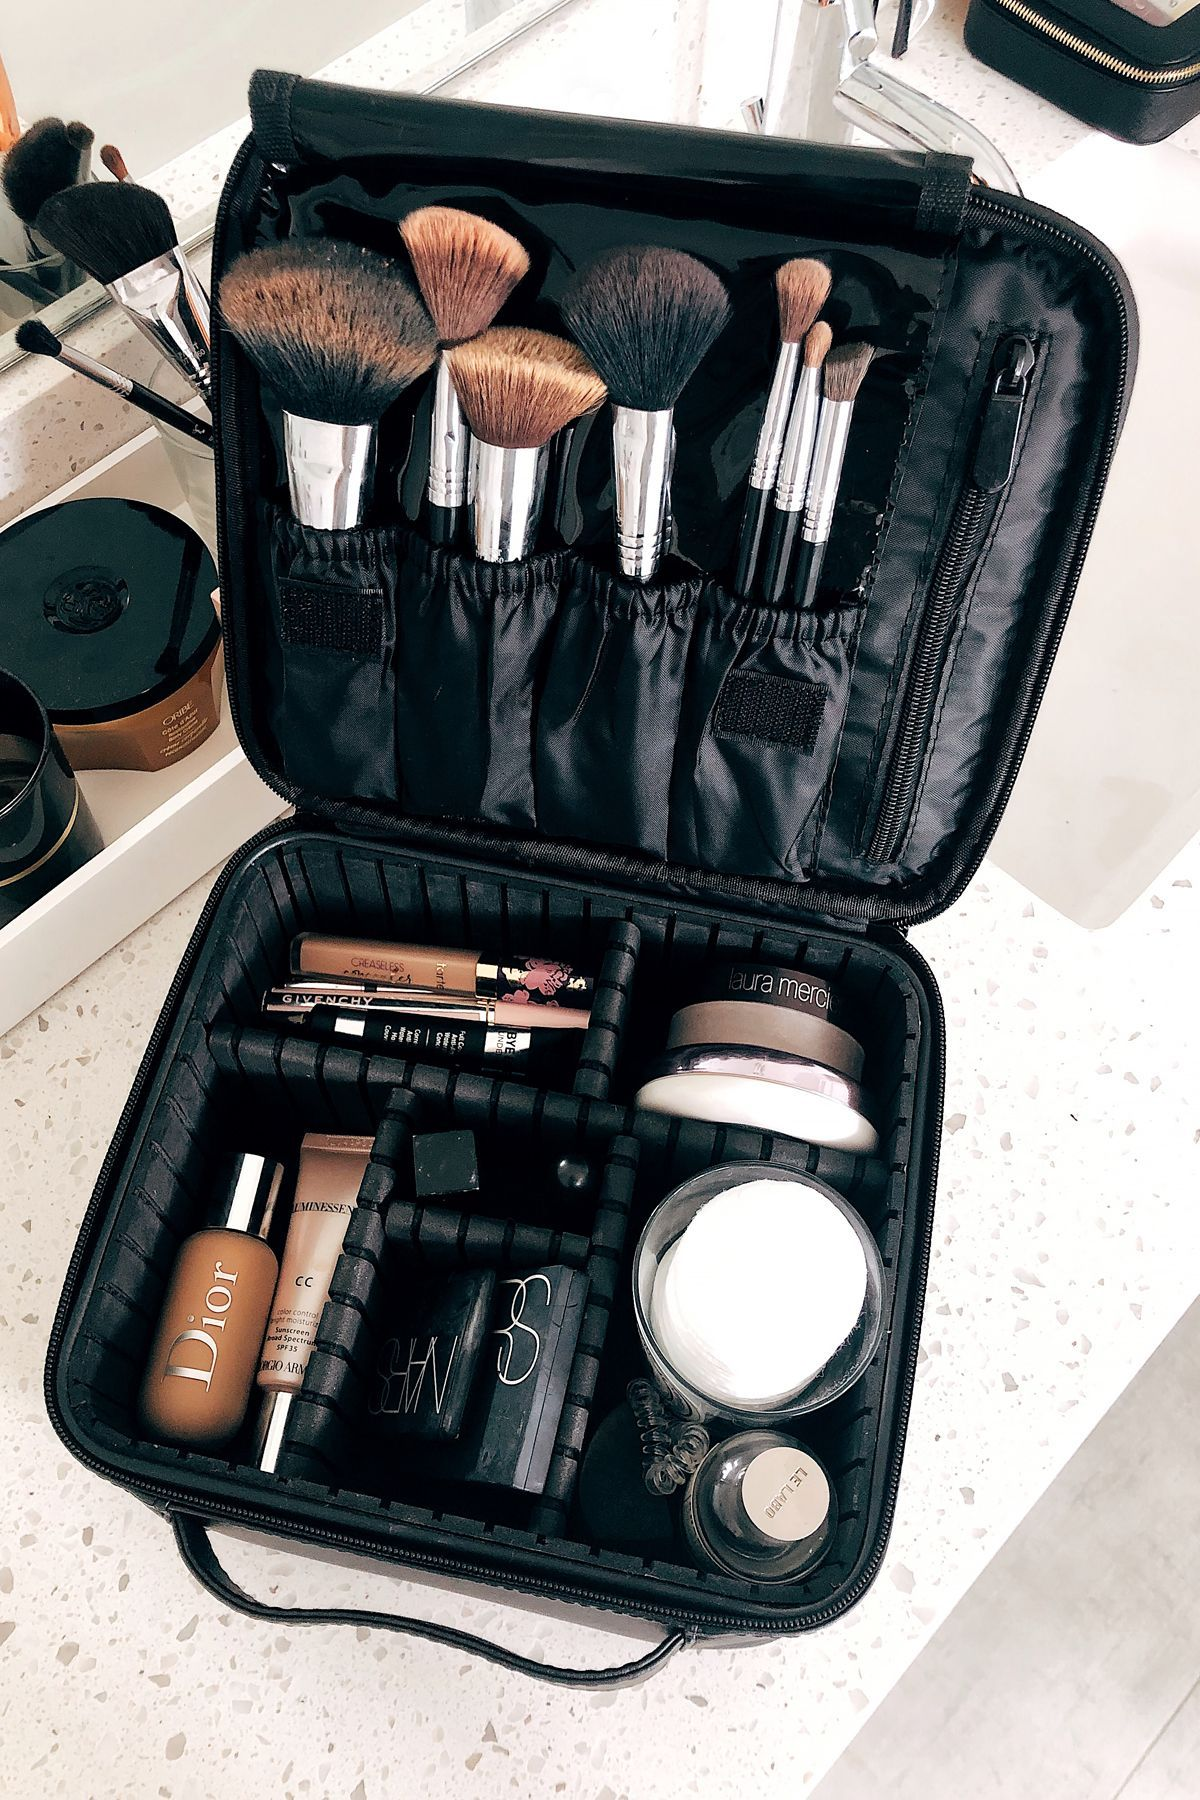 Top 15 Makeup Carrying Case for Home or Travel in 2020